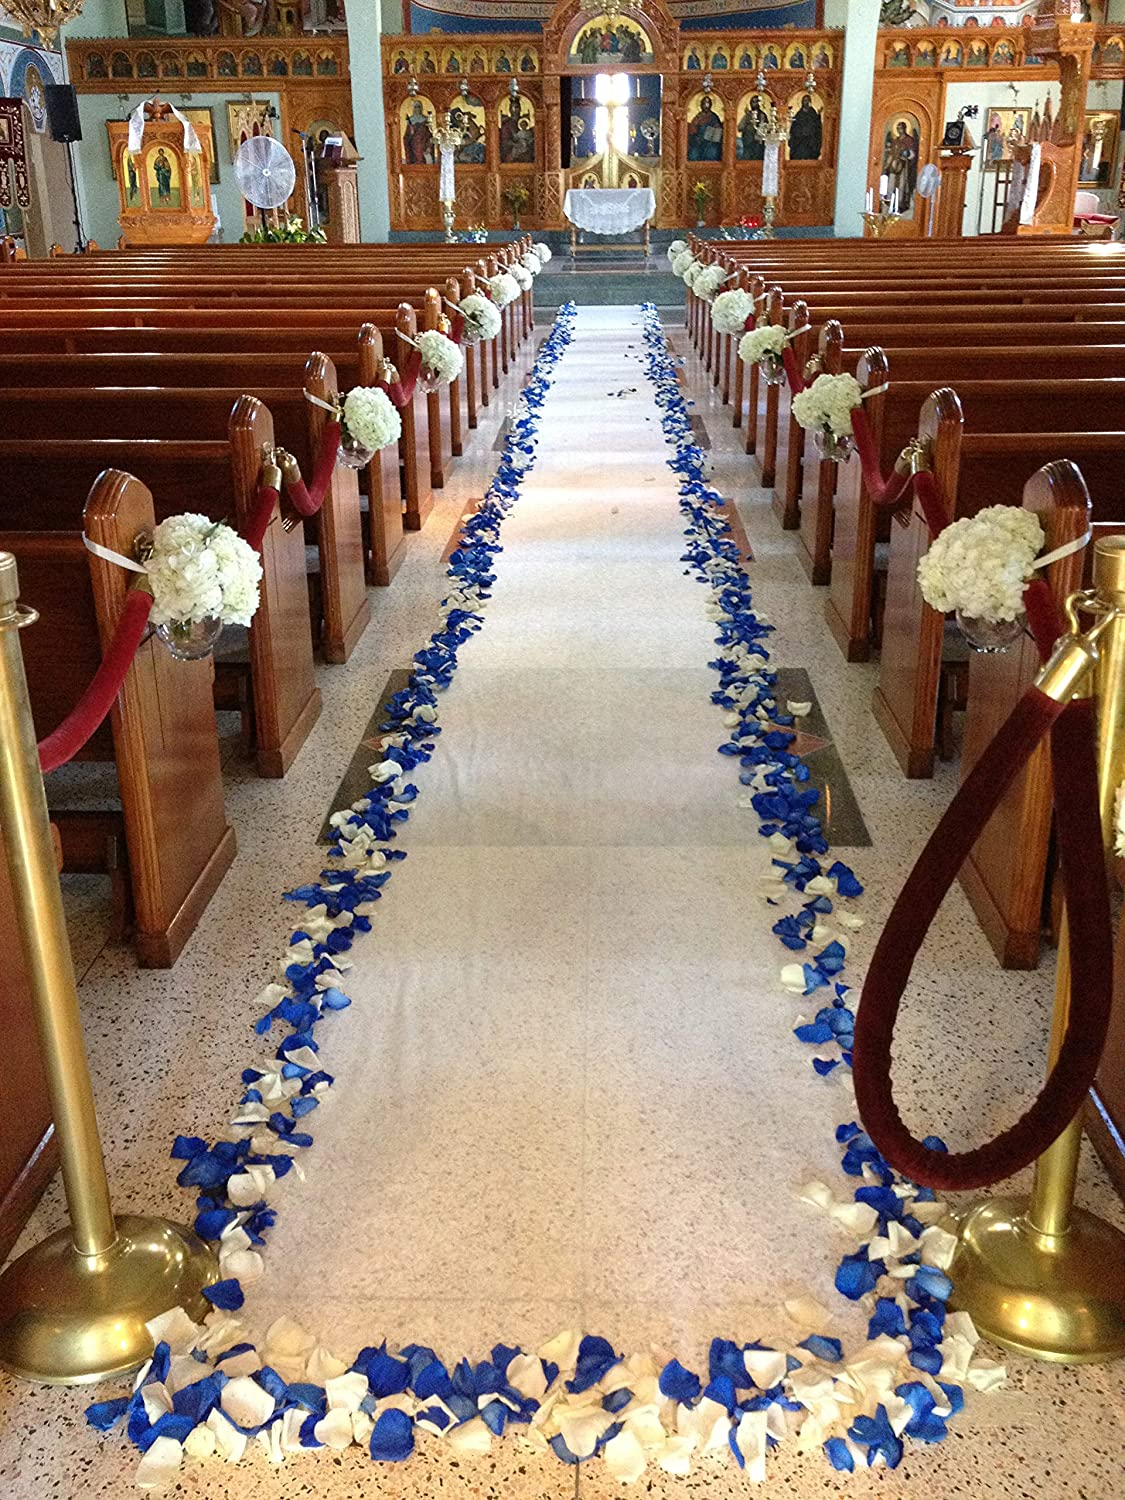 Supply Flora Wedding Aisle Runner 50ft x 3ft All Season Indoor Outdoor White Floral Print with Pull String and Double Sided Tape Adhesive Strip Church Ceremony Pew Decoration